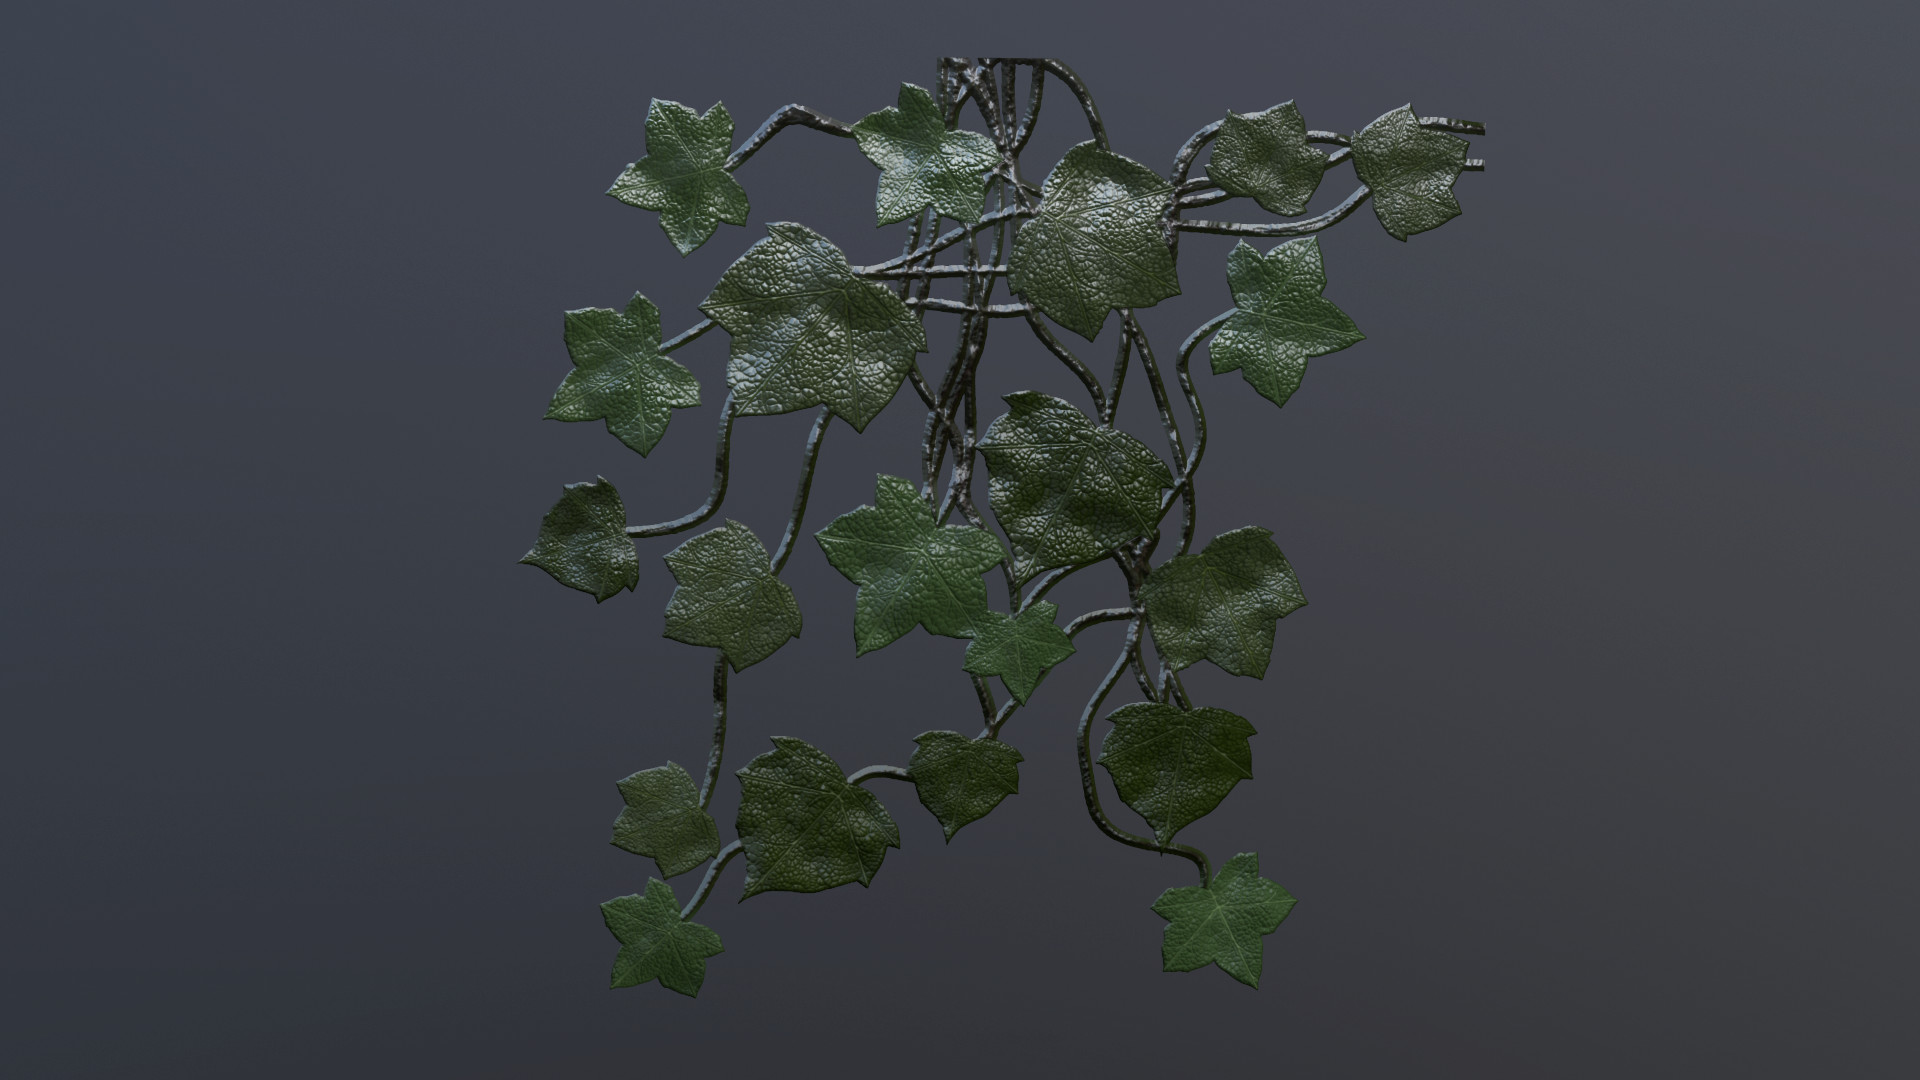 Made entirely in substance designer using shapes to create the leaf shapes and everything. You can see these vines throughout my Arch and Saramad hill environments.